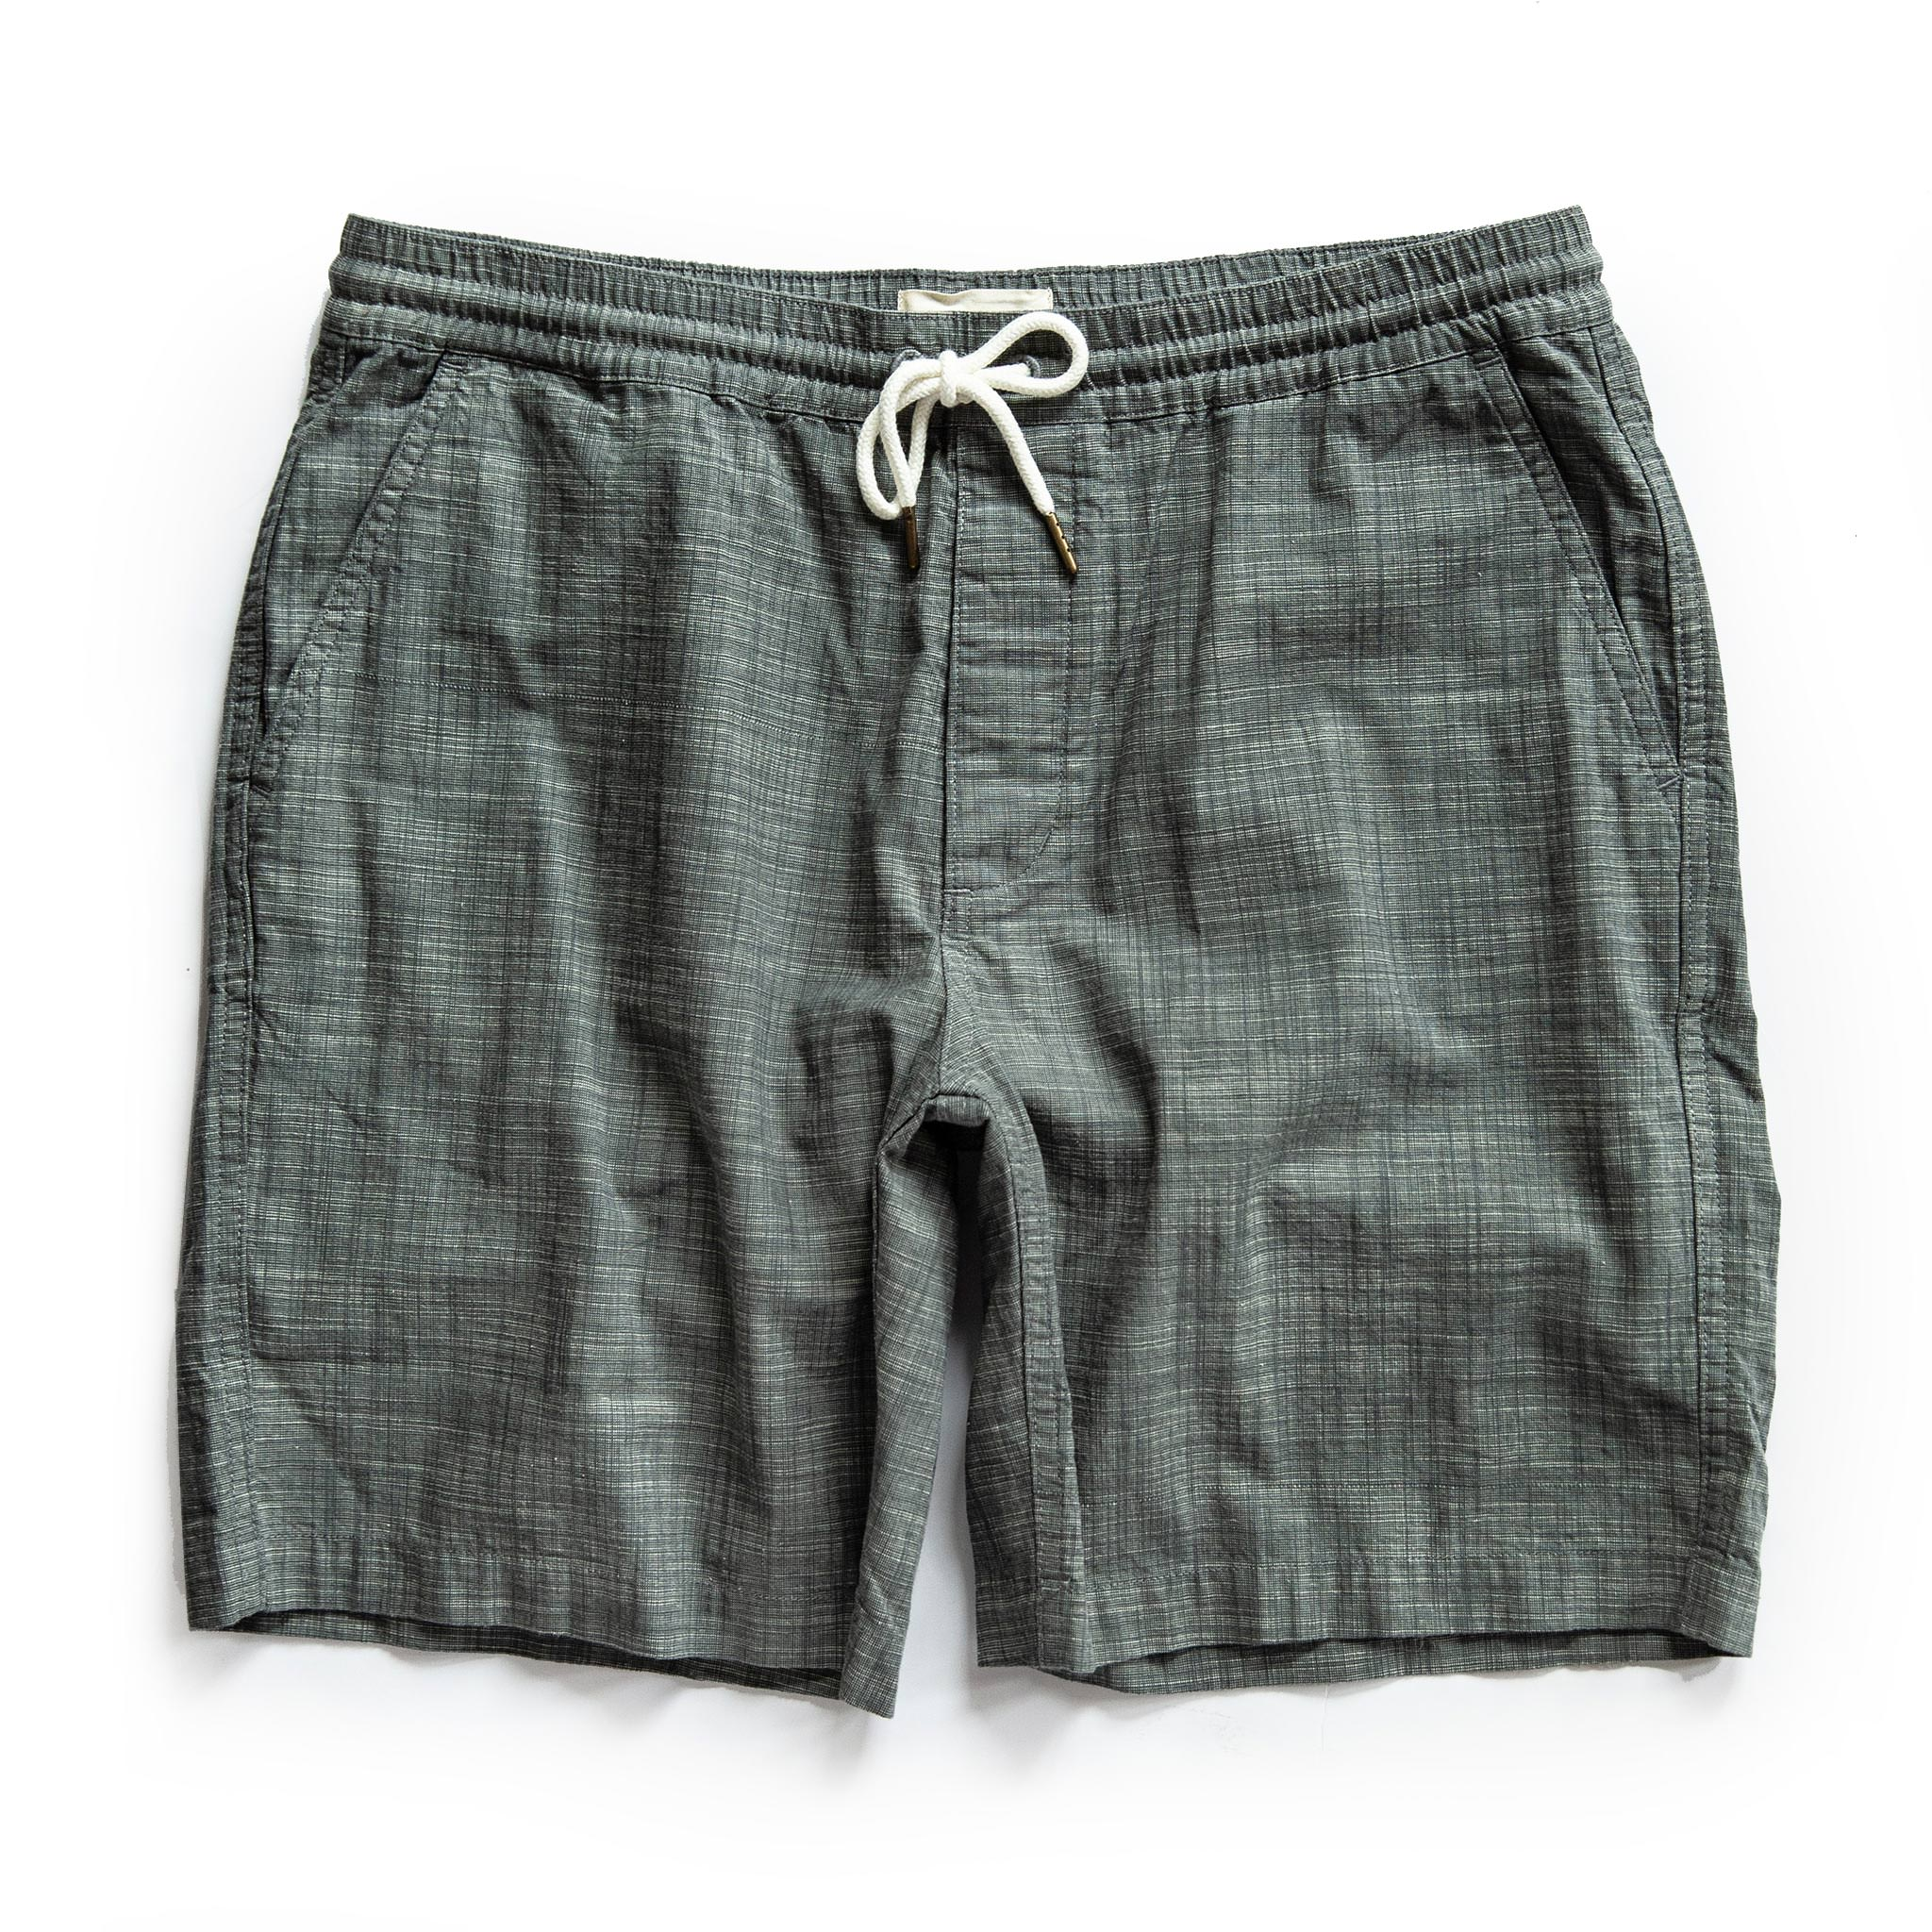 Taylor Stitch Apres Shorts in Olive Pin Dot